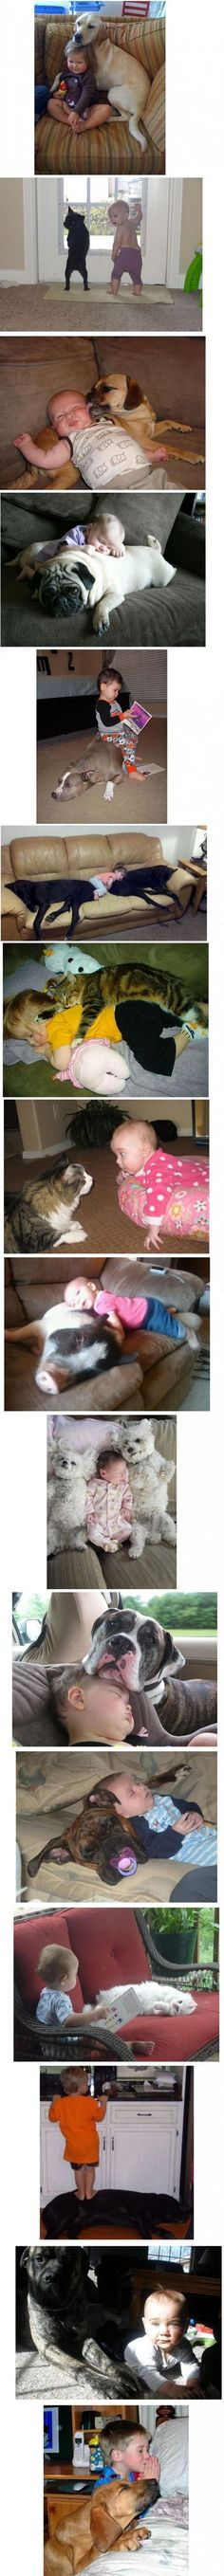 Animals and their humans